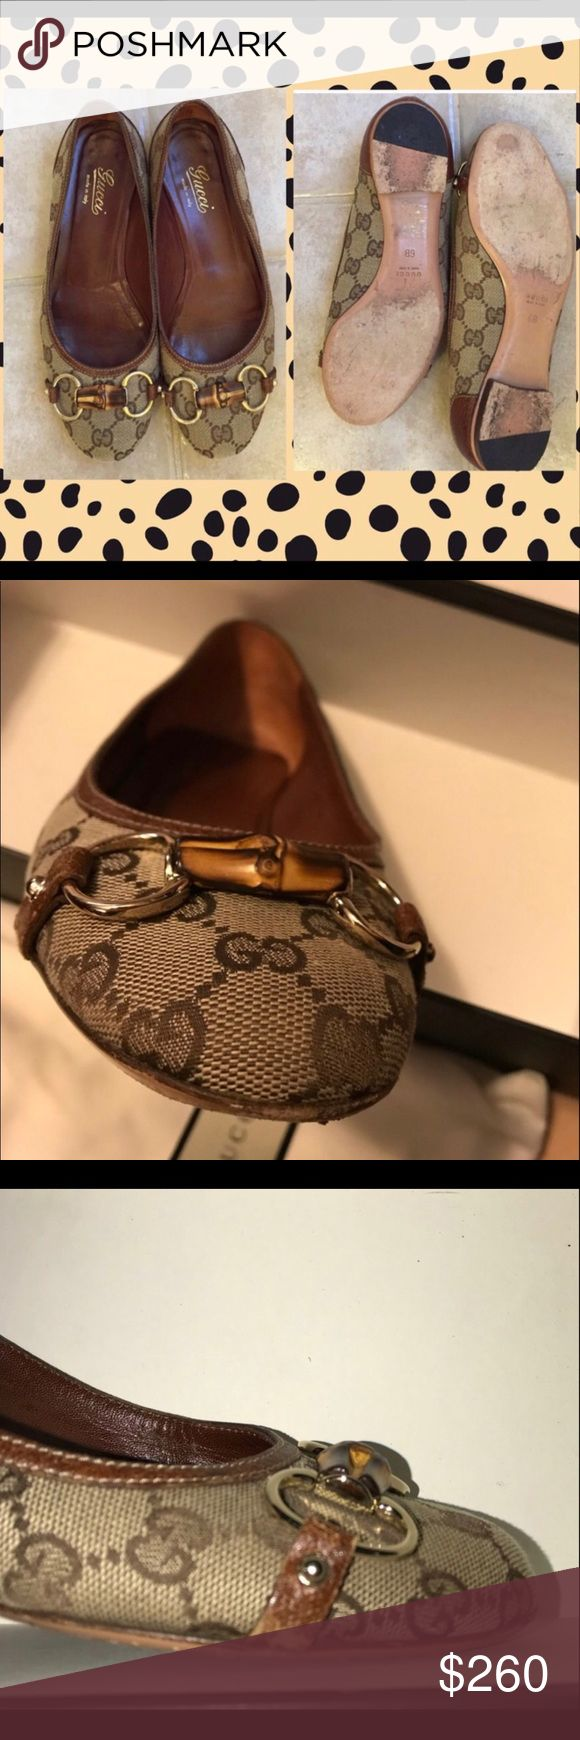 Authentic 💯💯💯 GUCCI horsebit flats💕💕💕 Very clean. Wore not too many times but do have a leather rubbing on side. It's pretty small. Not noticed wearing. Comes with box and shoe dust bags. Fits true to size. 💕💕💕 CHANEL Shoes Flats & Loafers